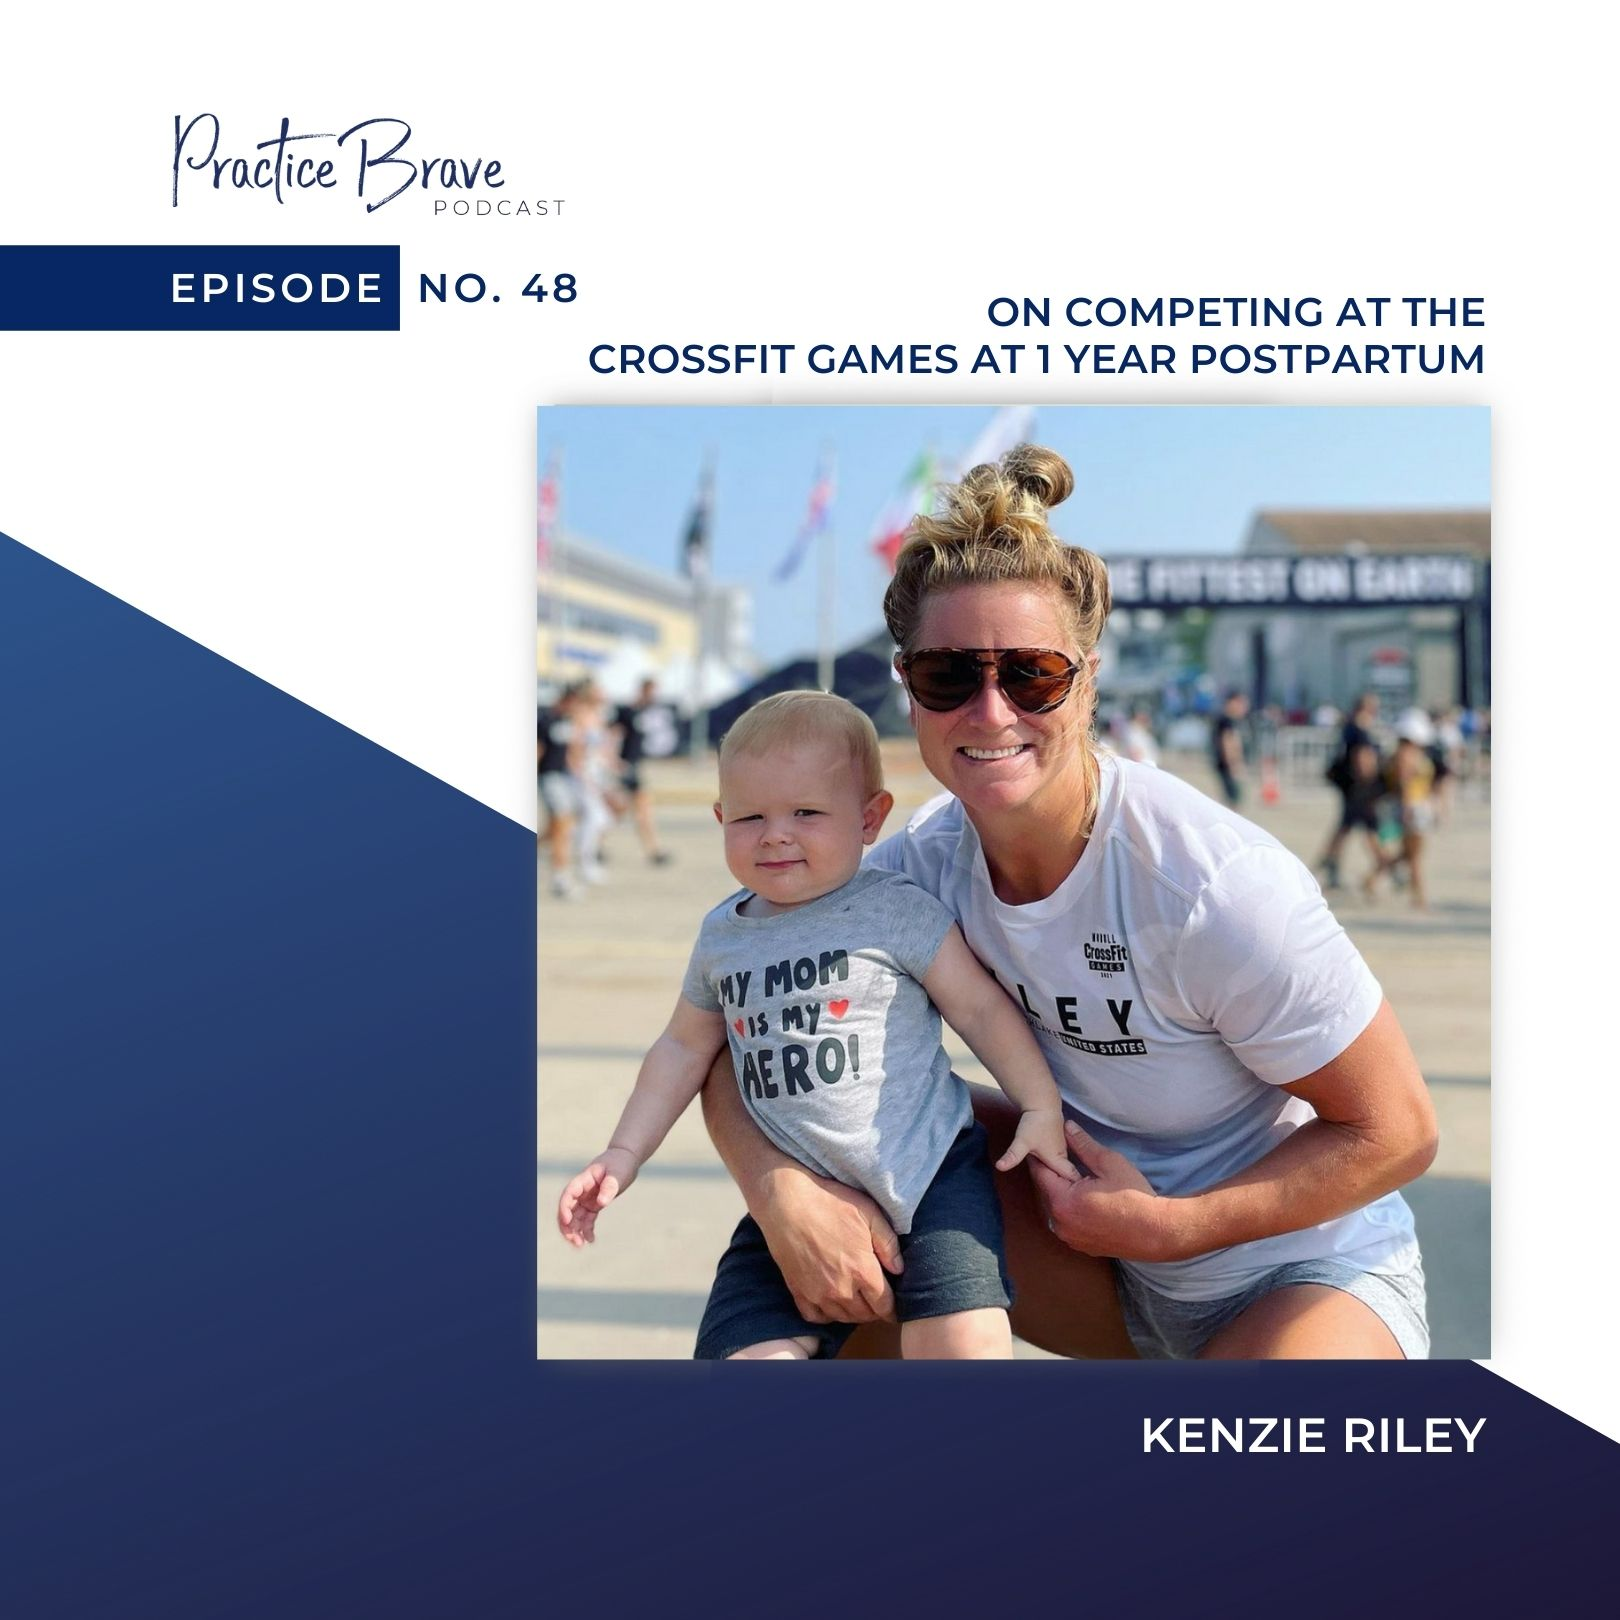 Episode 48: Kenzie Riley on Competing at the CrossFit Games at 1 Year Postpartum